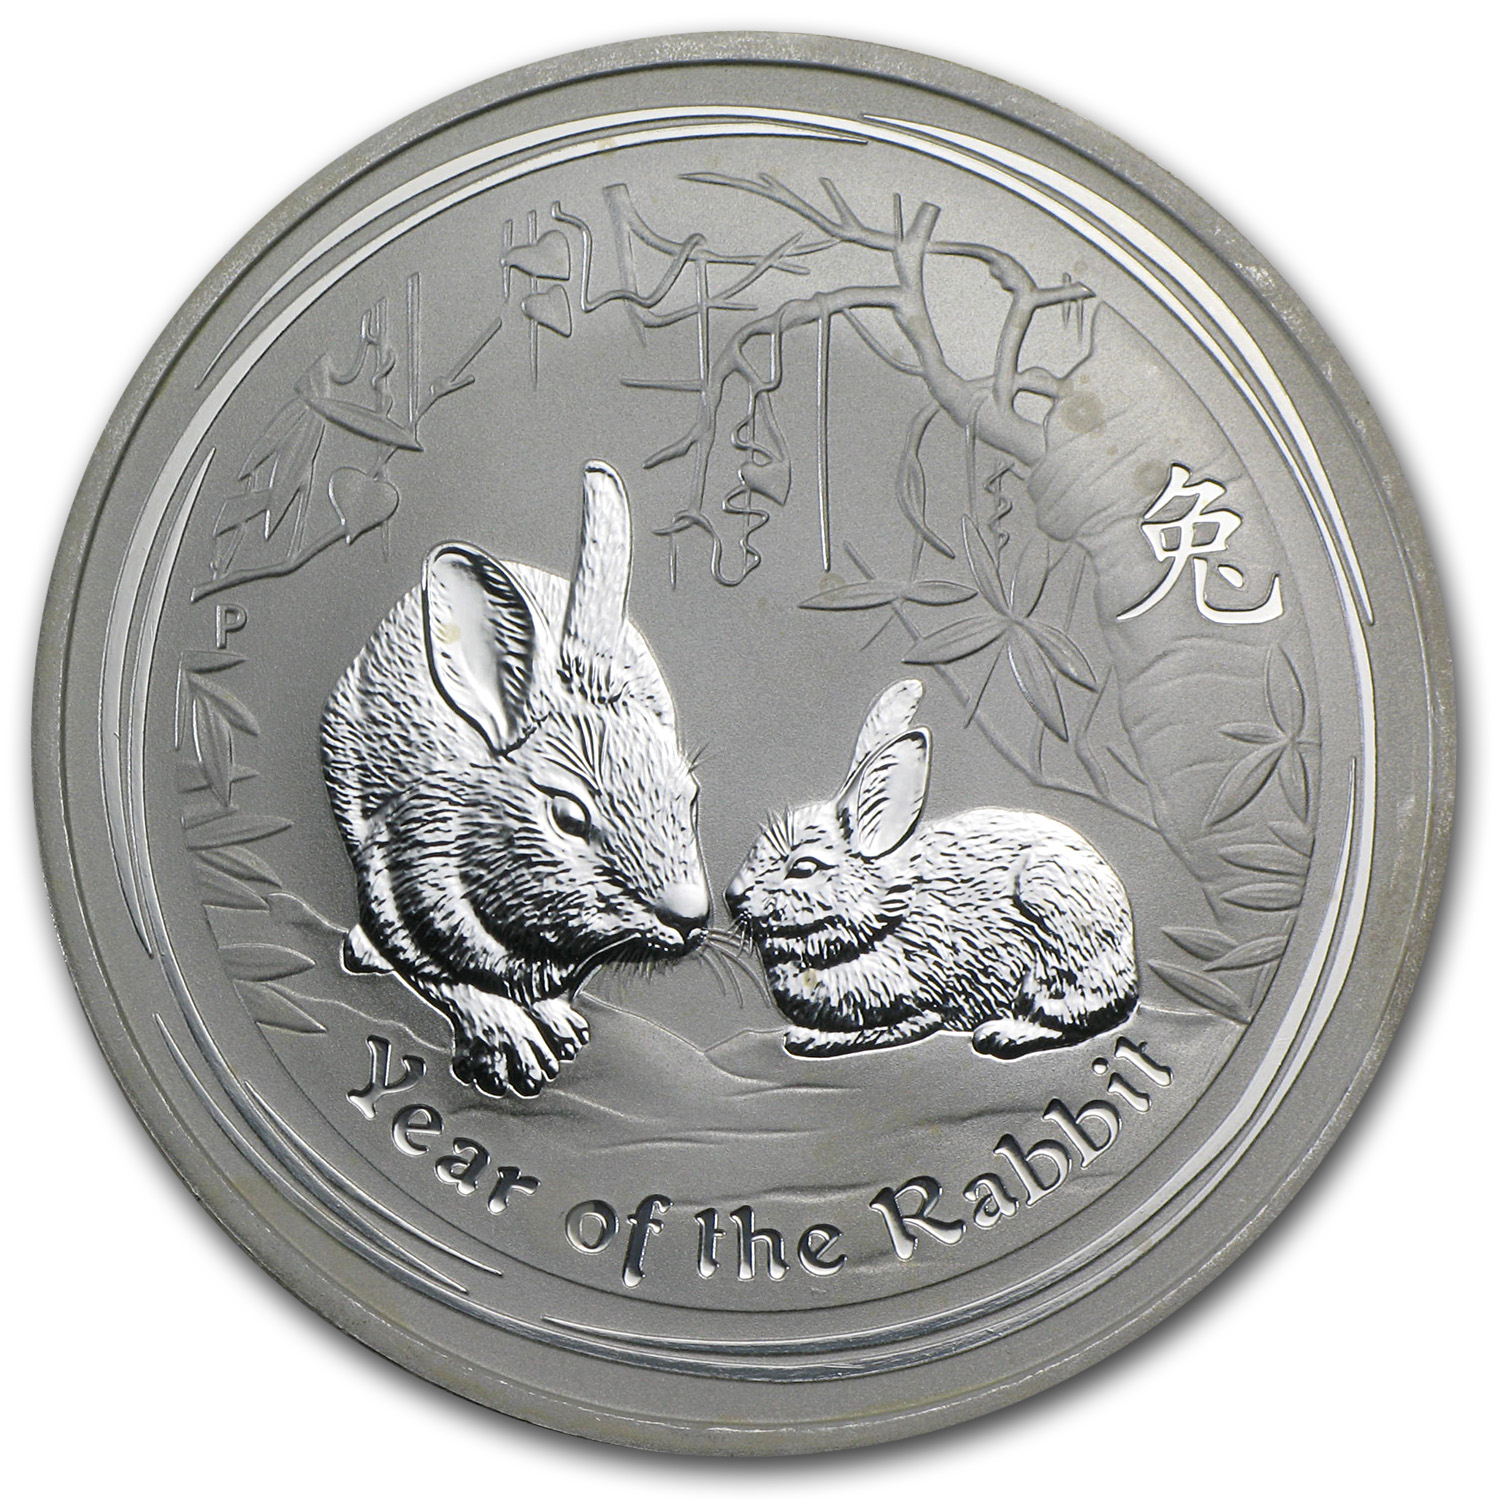 2011 1 oz Silver Australian Year of the Rabbit SII (Abrasions)